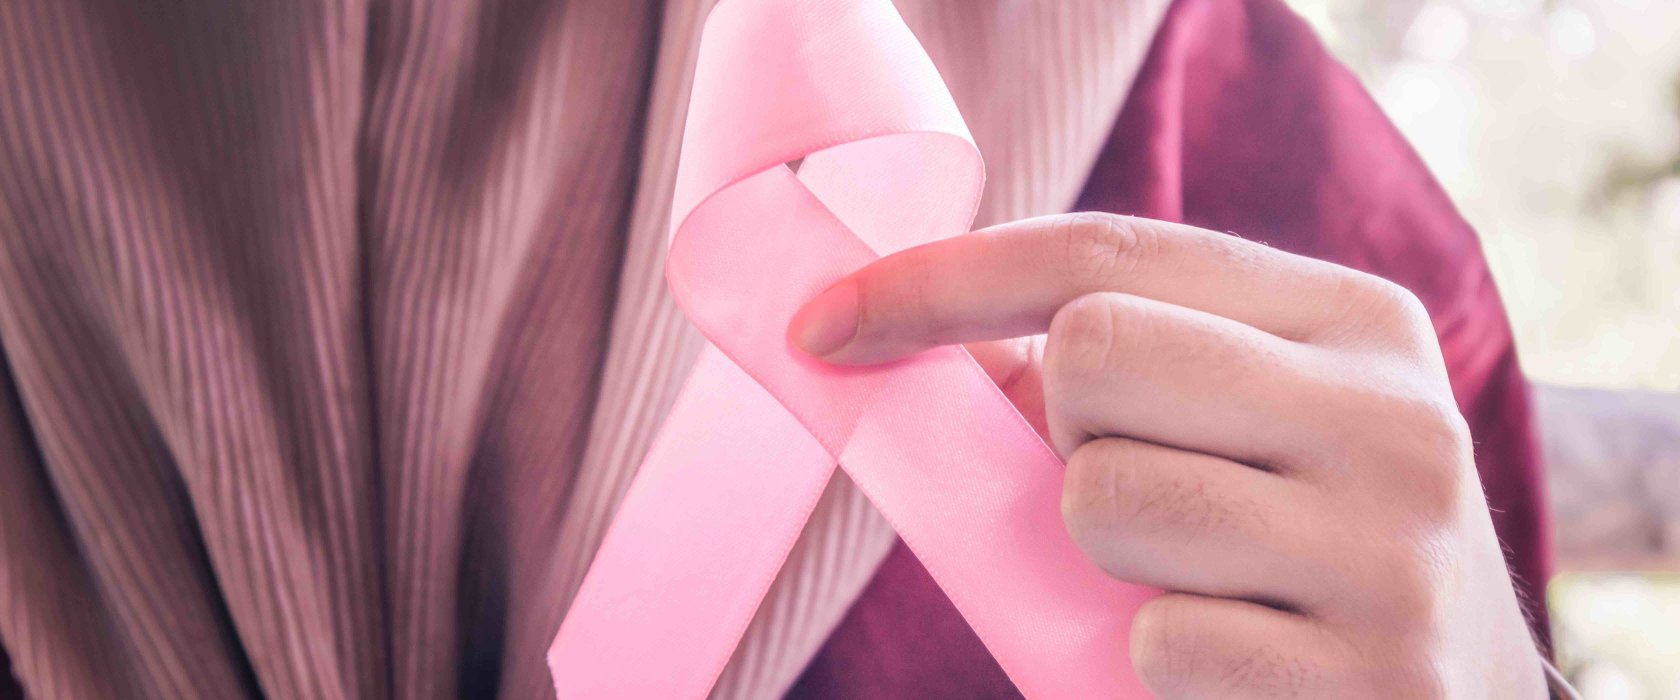 QF researchers and King Hussein Cancer Center deepen understanding of Arab region's breast cancer complexity